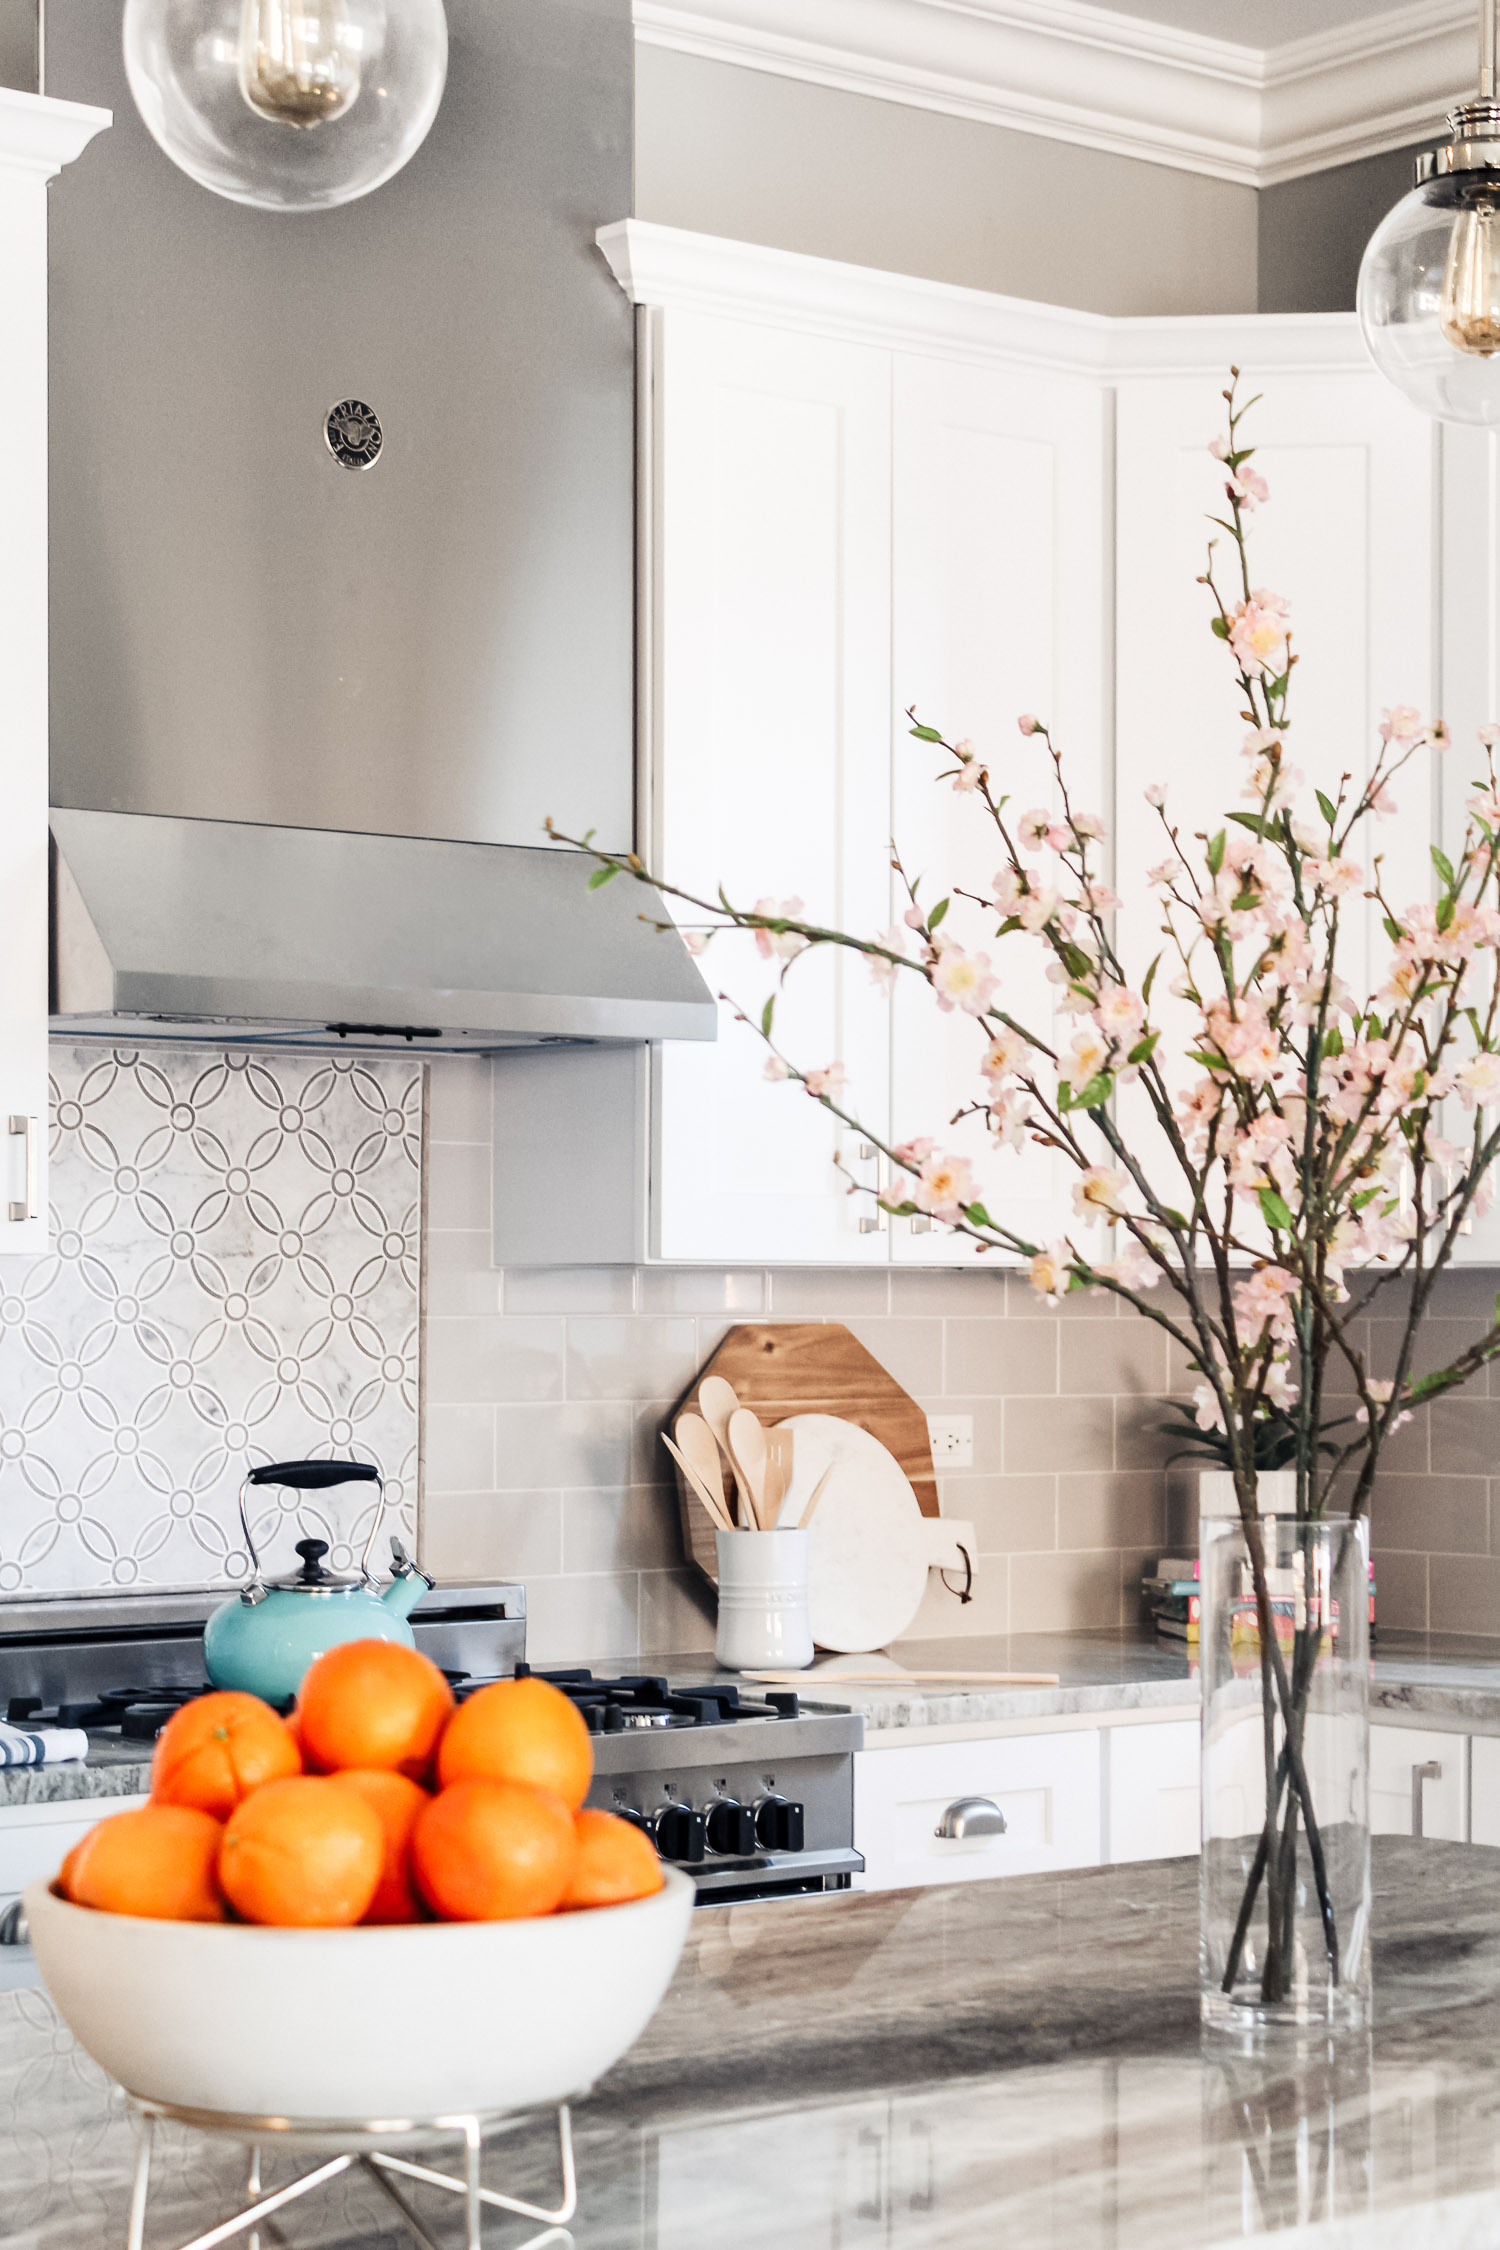 This was my first project where I was able to select finishes and it was for a condo going on the market to sell. Even though it sold right away (without it being styled btw), I wanted to see this kitchen look a little lived in before saying goodbye.